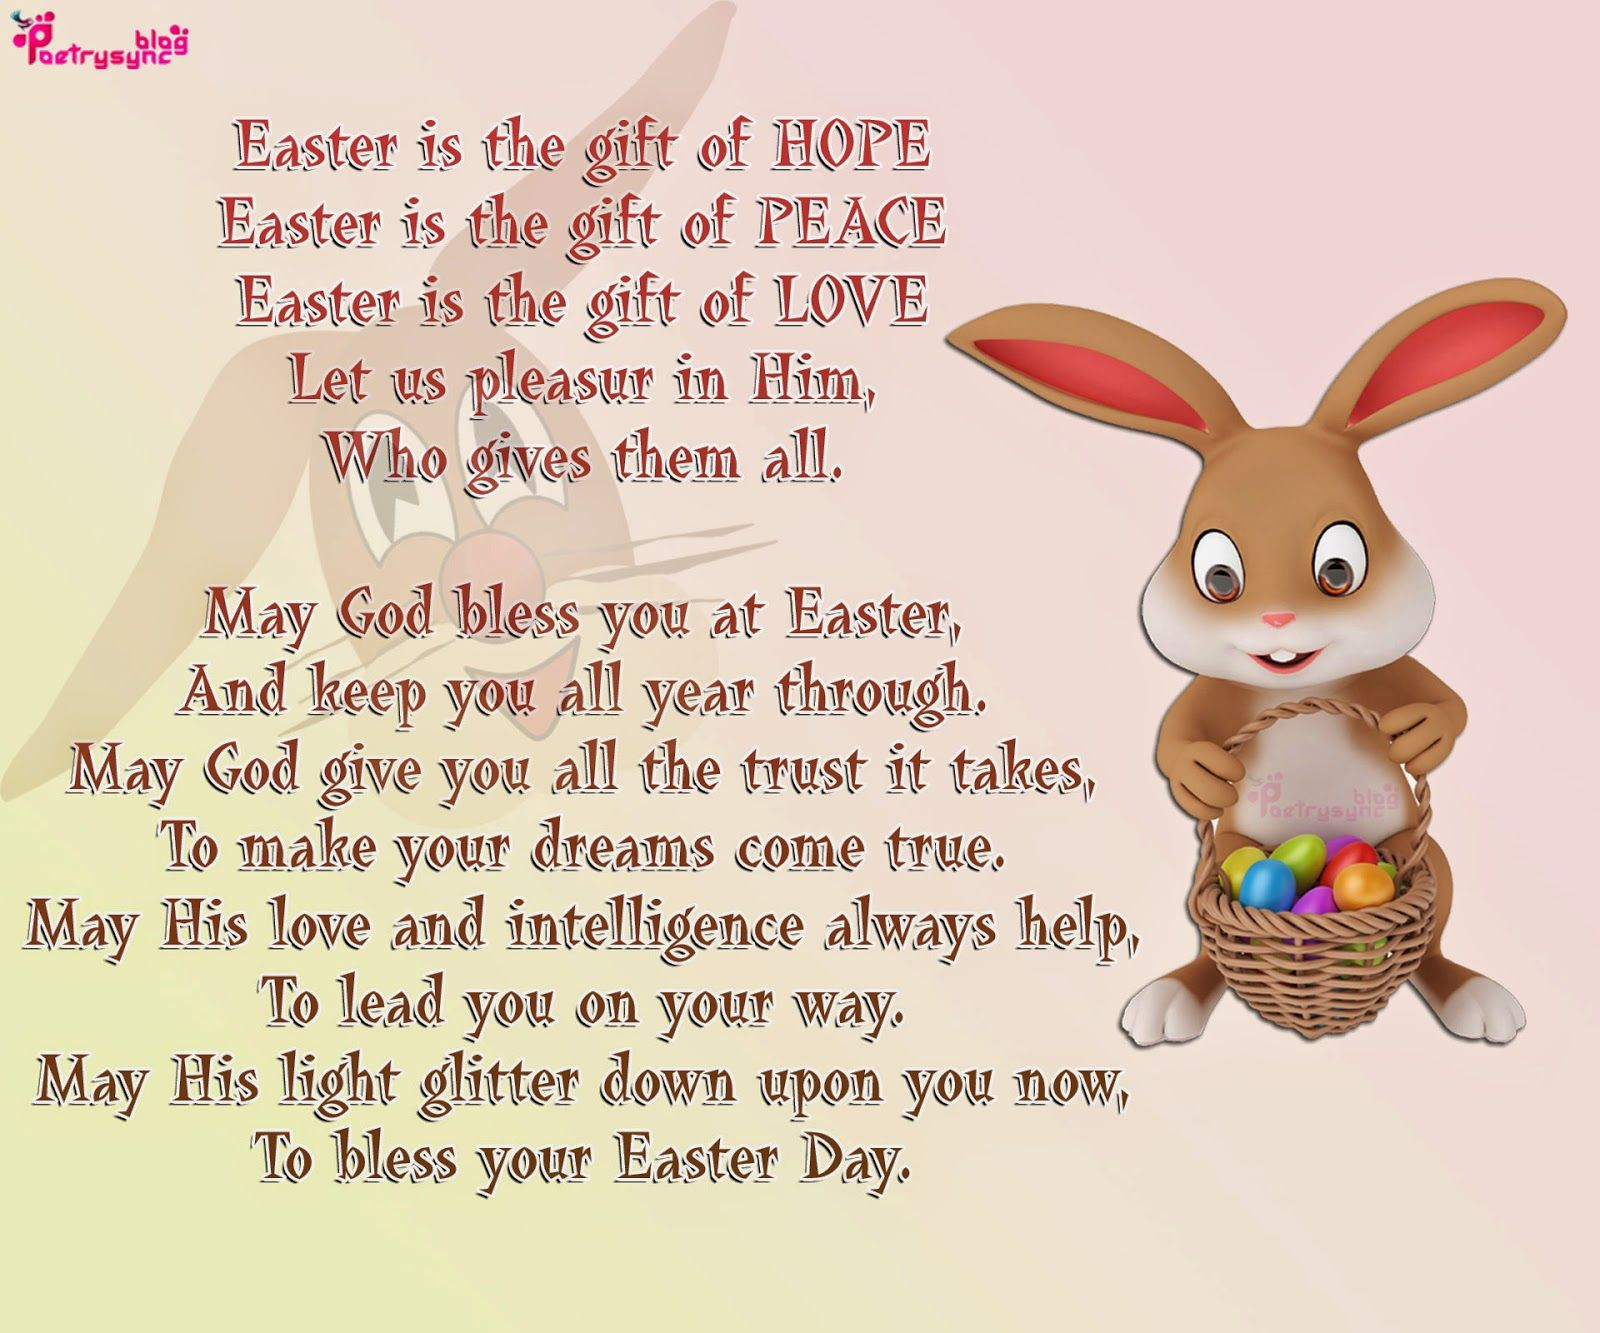 Easter day poem image lovely bunny easter day poems pinterest easter day poem image lovely bunny negle Images